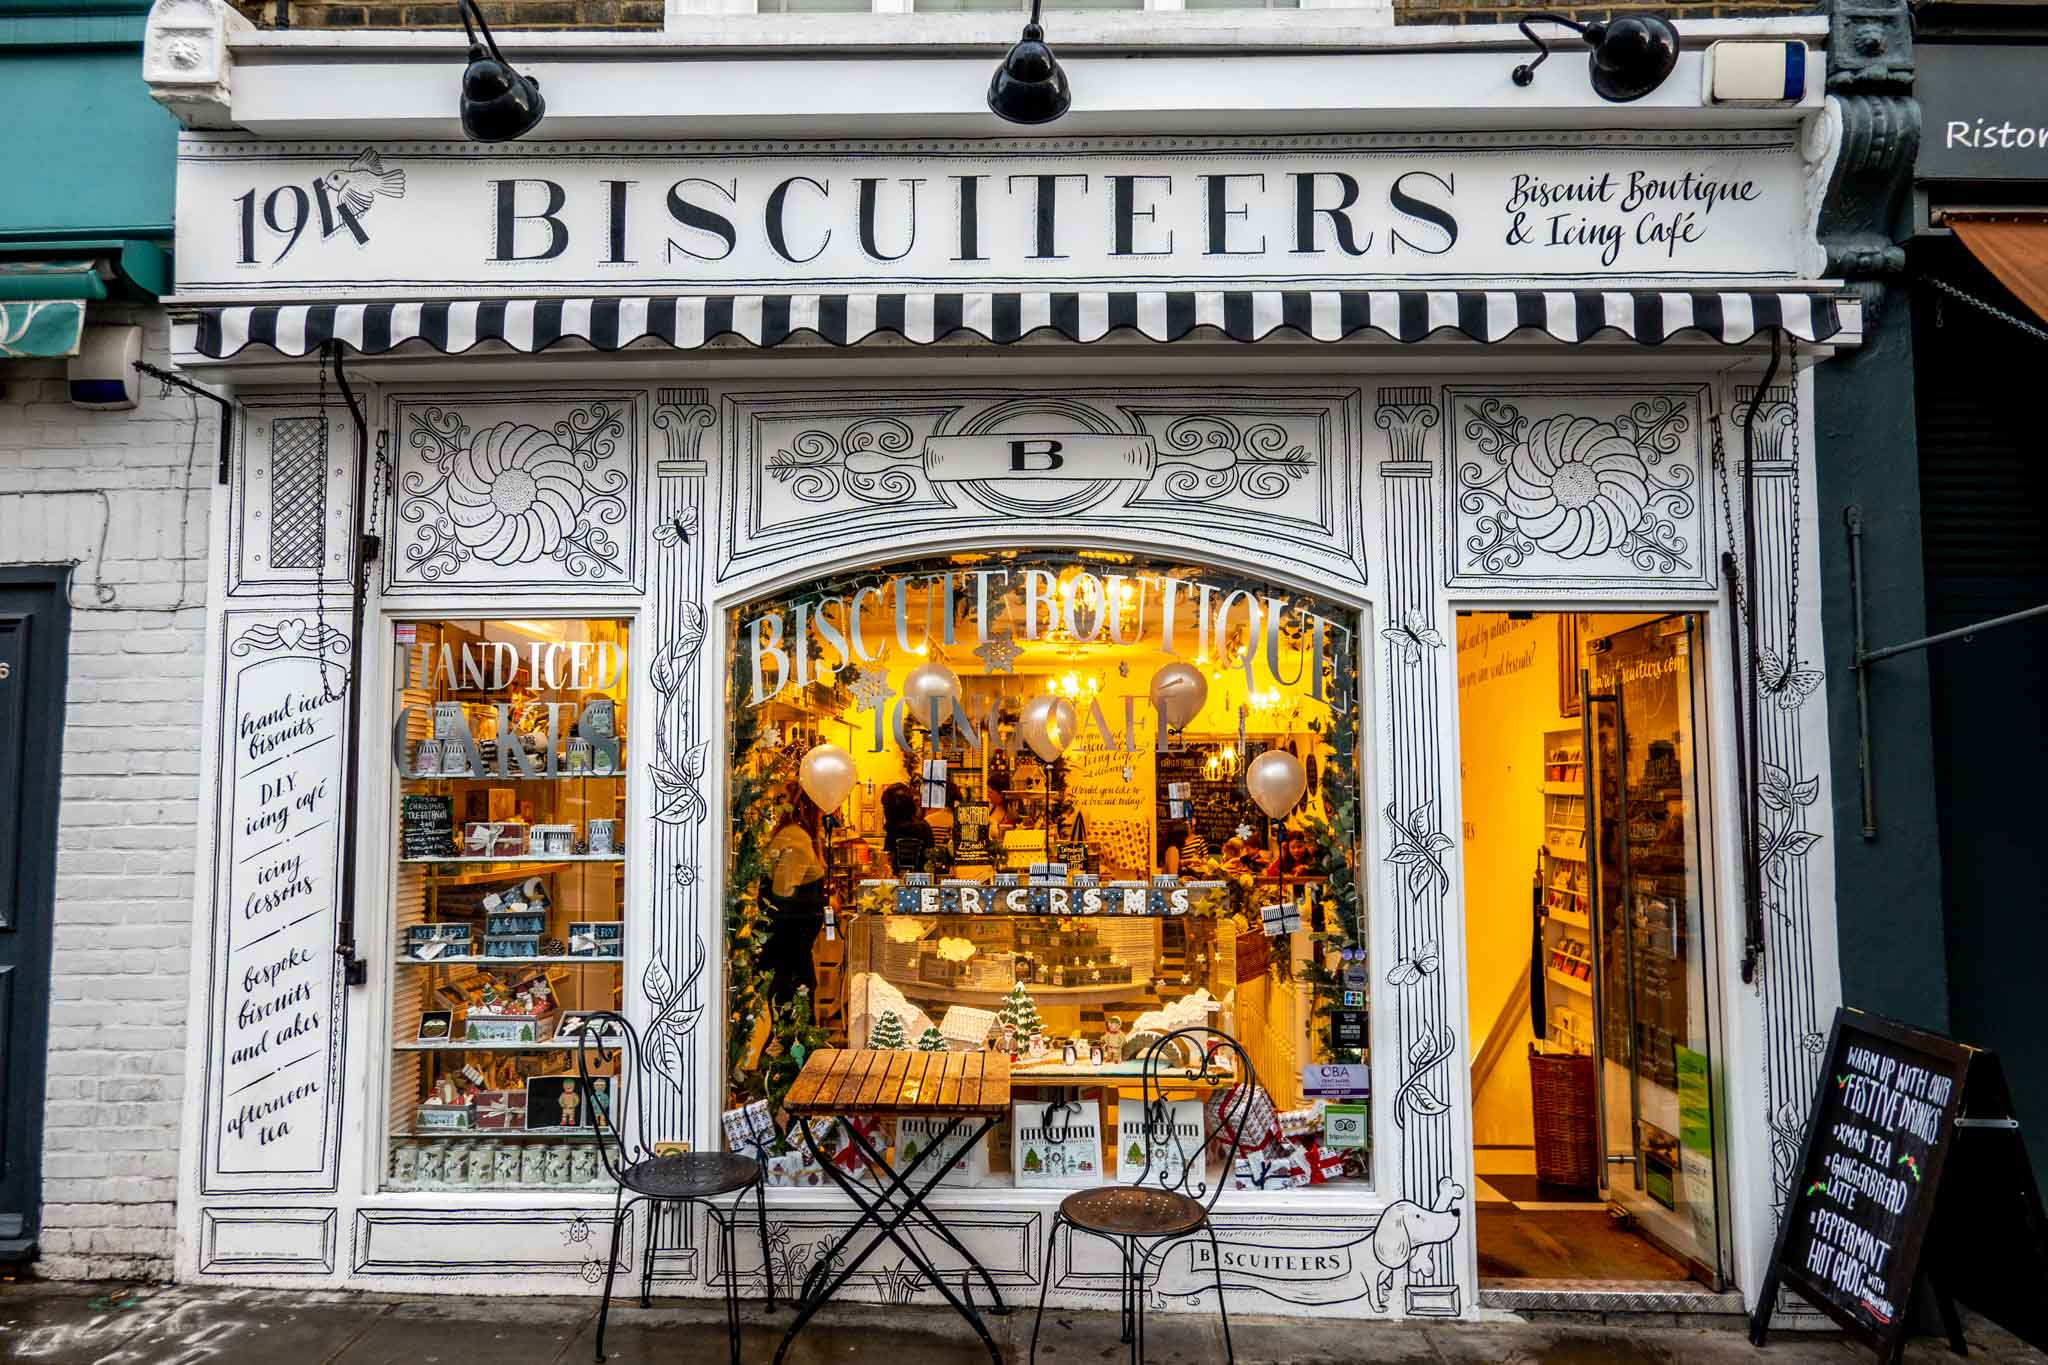 Black and white exterior of Biscuiteers cafe